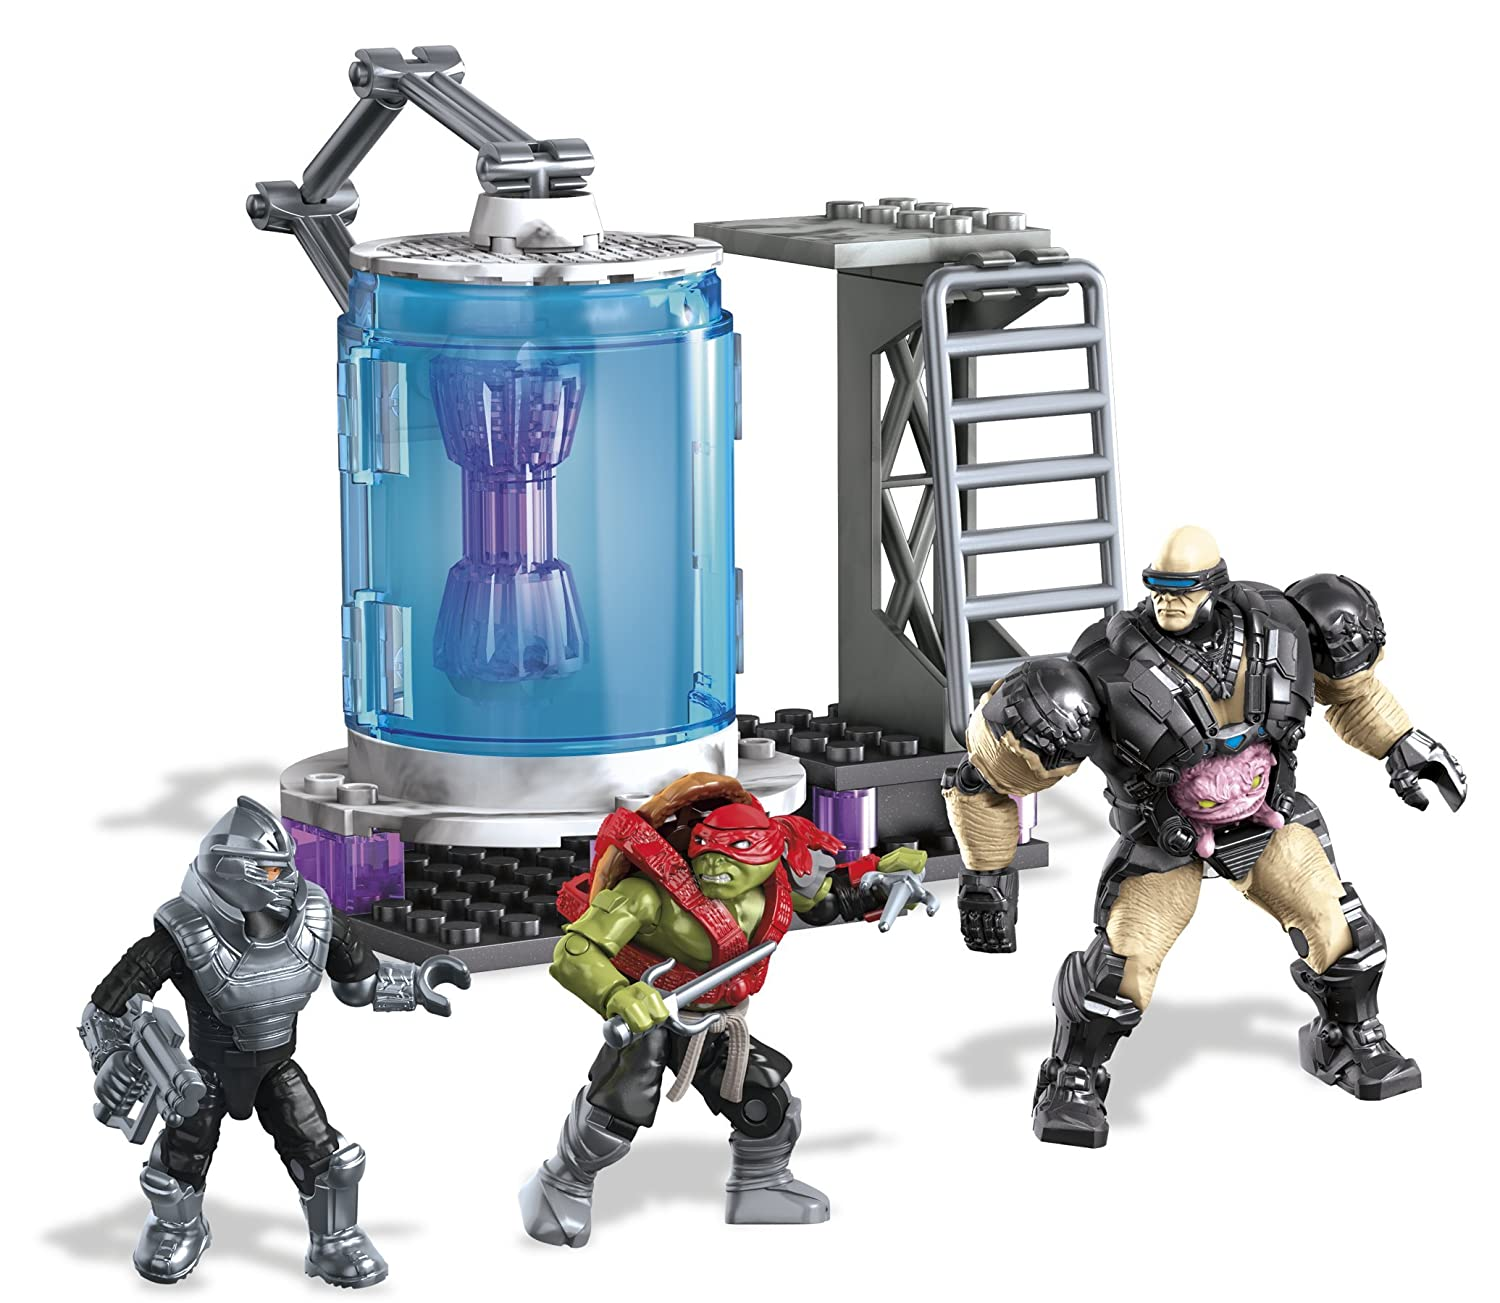 Amazon.com: Mega Bloks Teenage Mutant Ninja Turtles Kraang Cryo ...